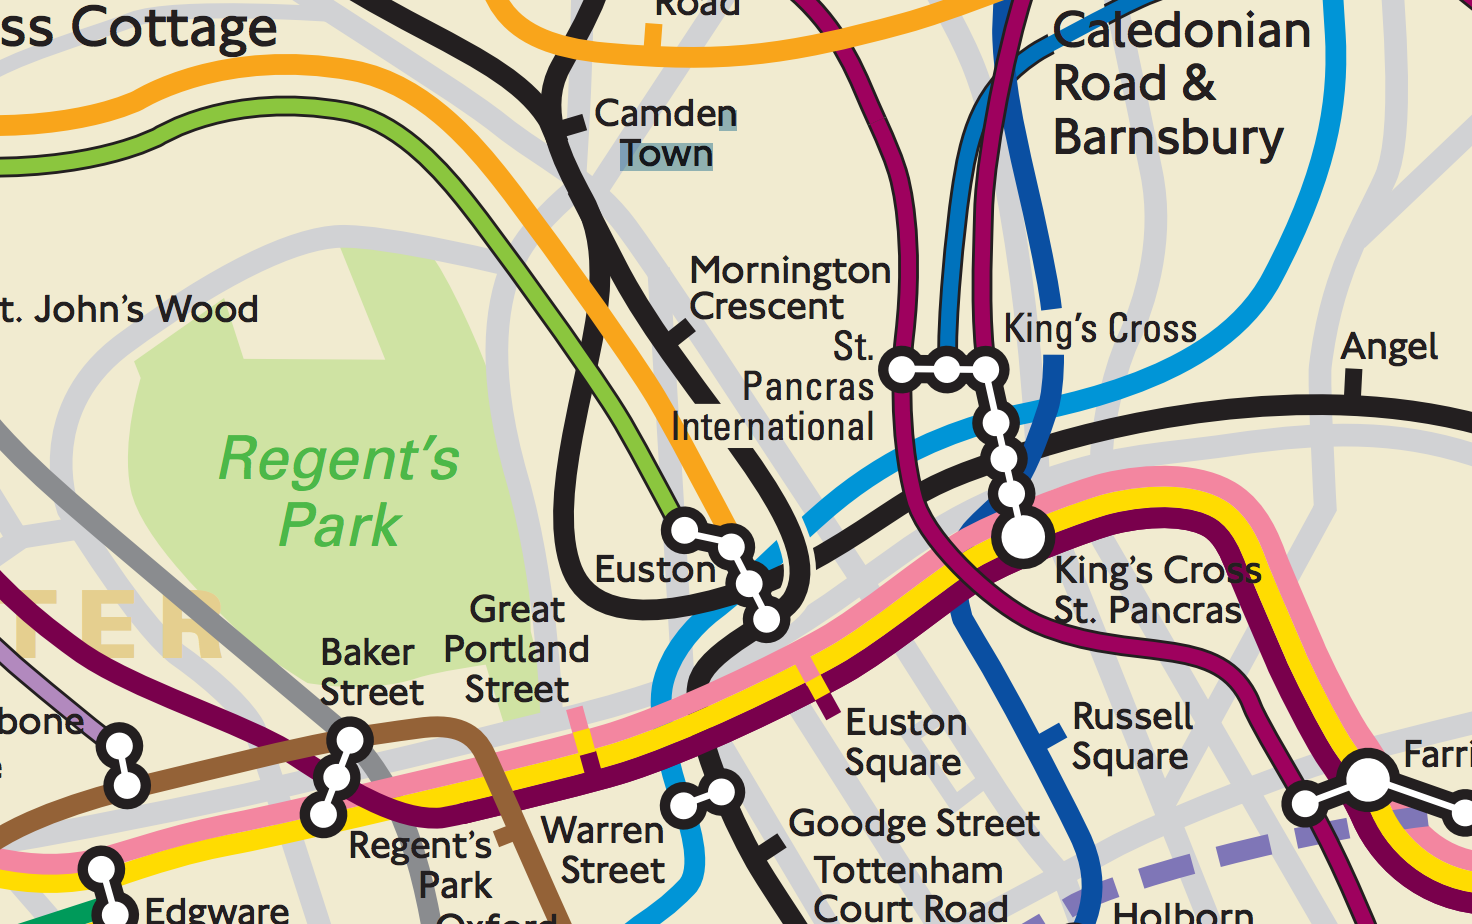 London Subway Map Russell Station.7 Places Where The London Underground Map Completely Lies To Us